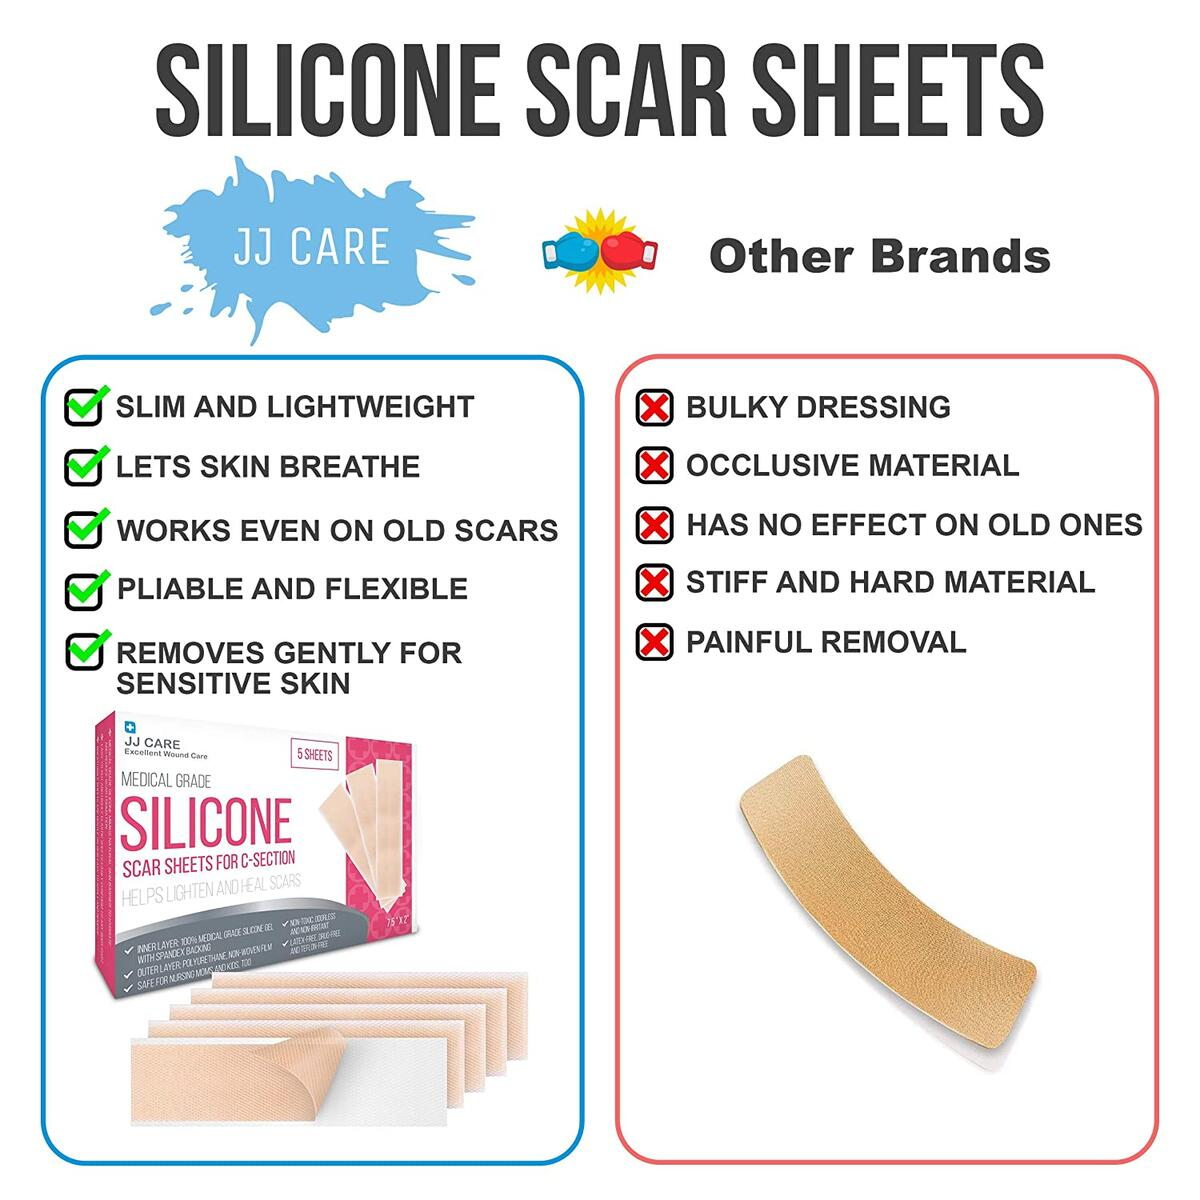 """[Box of 5] Silicone Scar Sheets for C Section (7.5""""x2"""") Medical Silicone Scar Removal Sheets, Reusable Silicone Patches for Scars, Keloid, Silicone Gel Sheets for Old & New Scars w/UV Protection"""